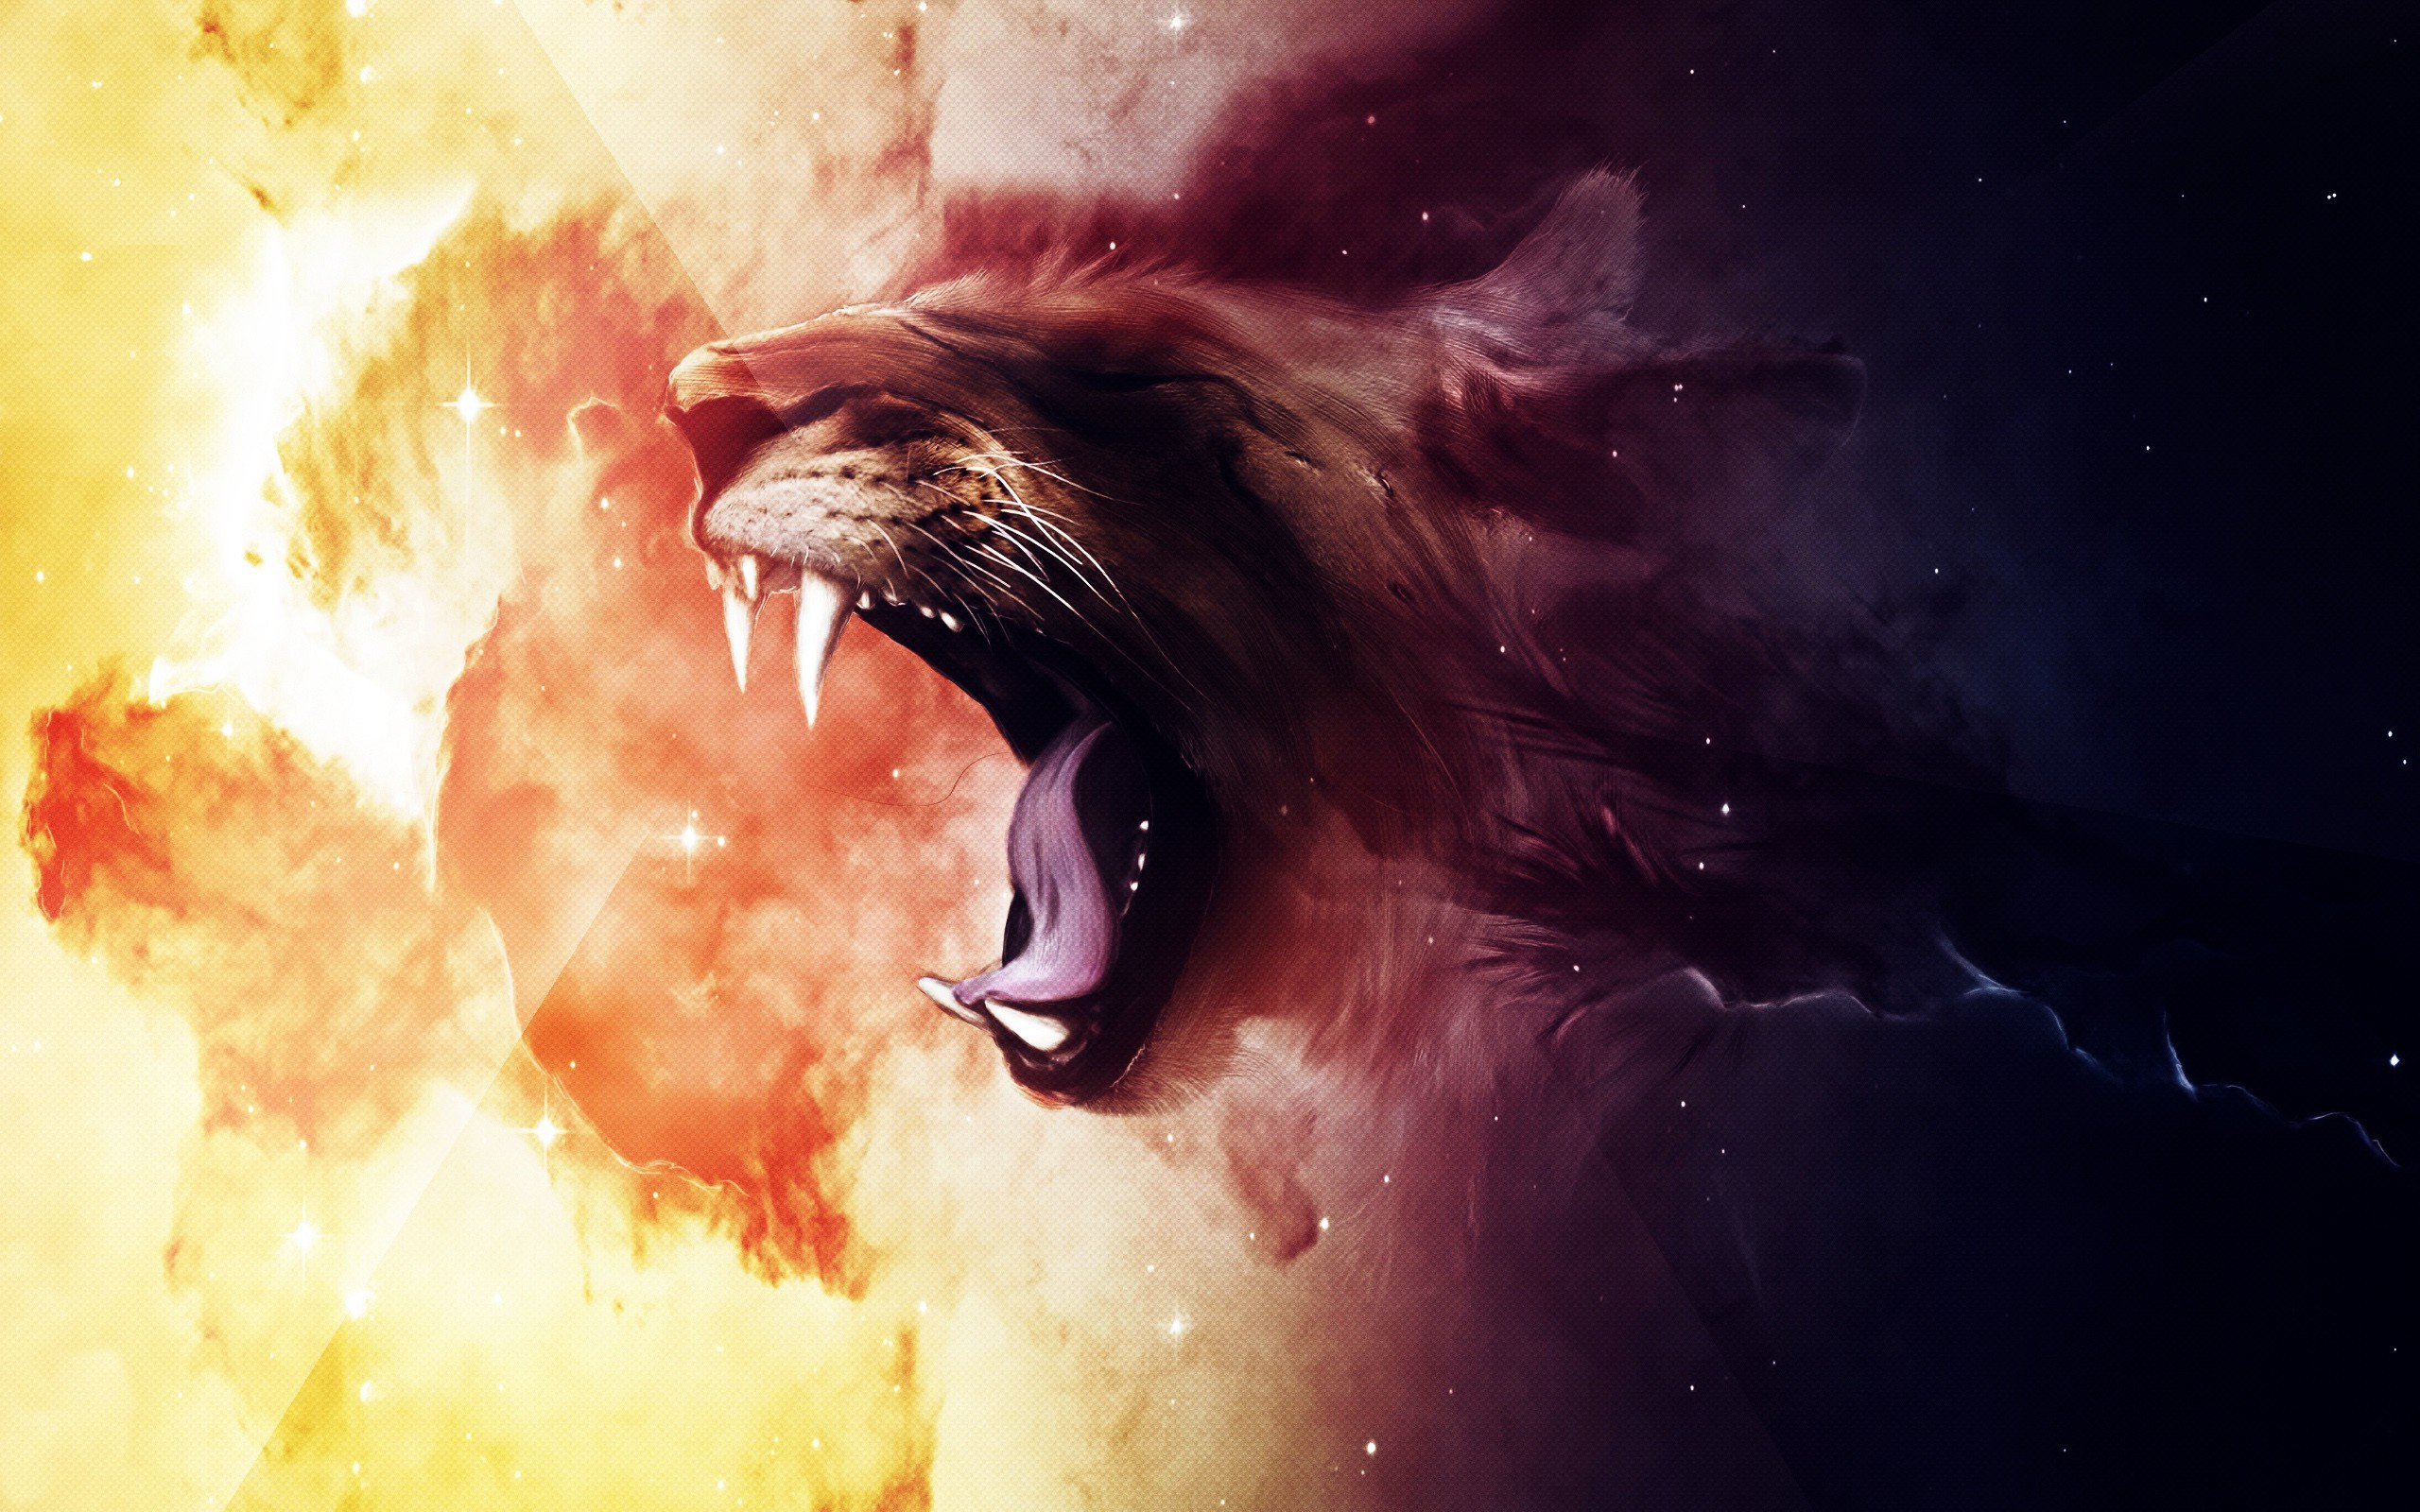 Creative Detailed Hd Fantasy Wallpapers: Roaring Lion, HD Creative, 4k Wallpapers, Images